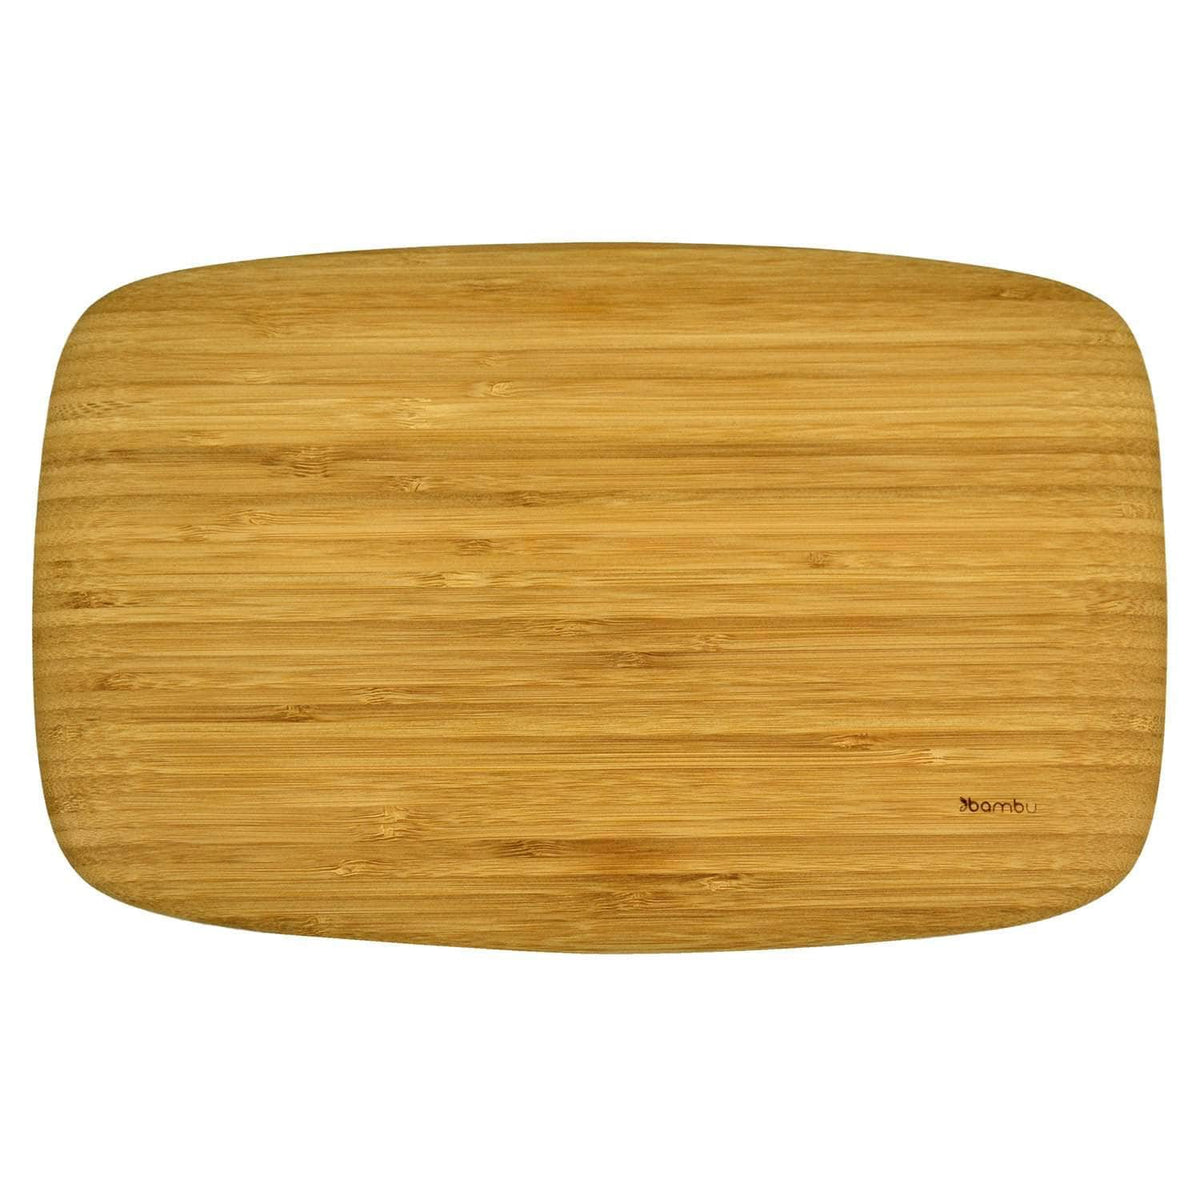 *NEW* Classic bamboo cutting & serving boards Medium